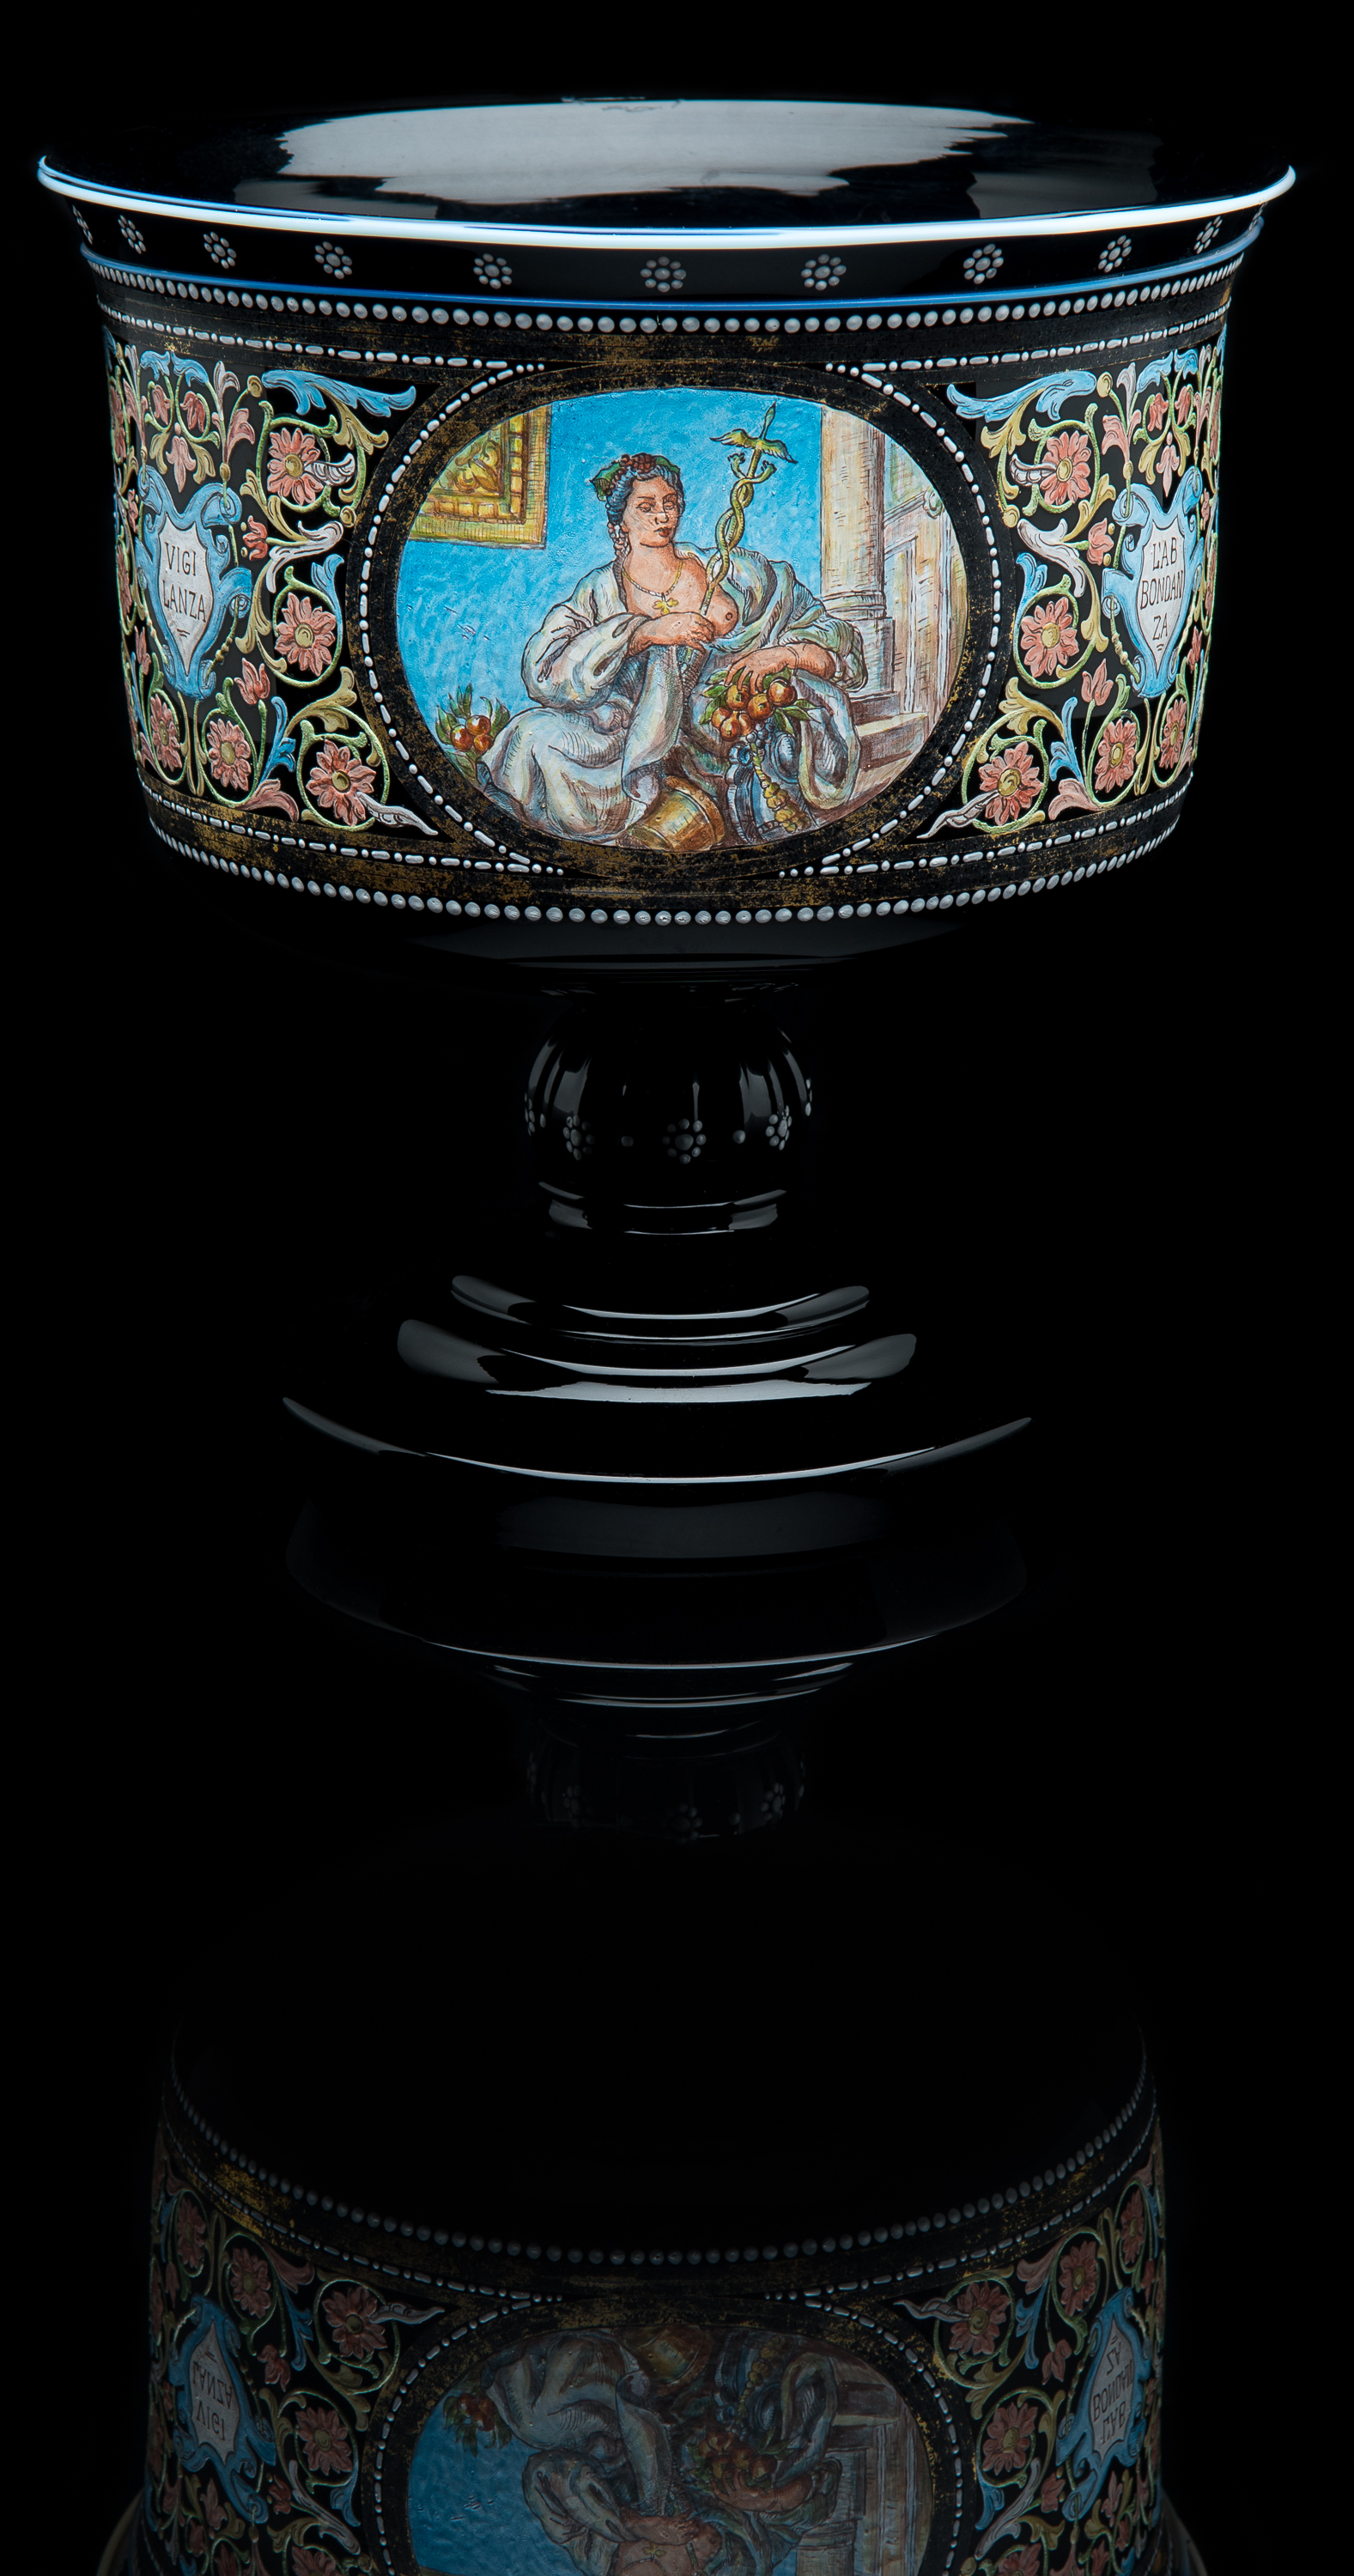 Unknown,  Amethyst Pedestal Bowl with Enameled Neoclassical Women  (glass, 7.5 inches), VV.1024